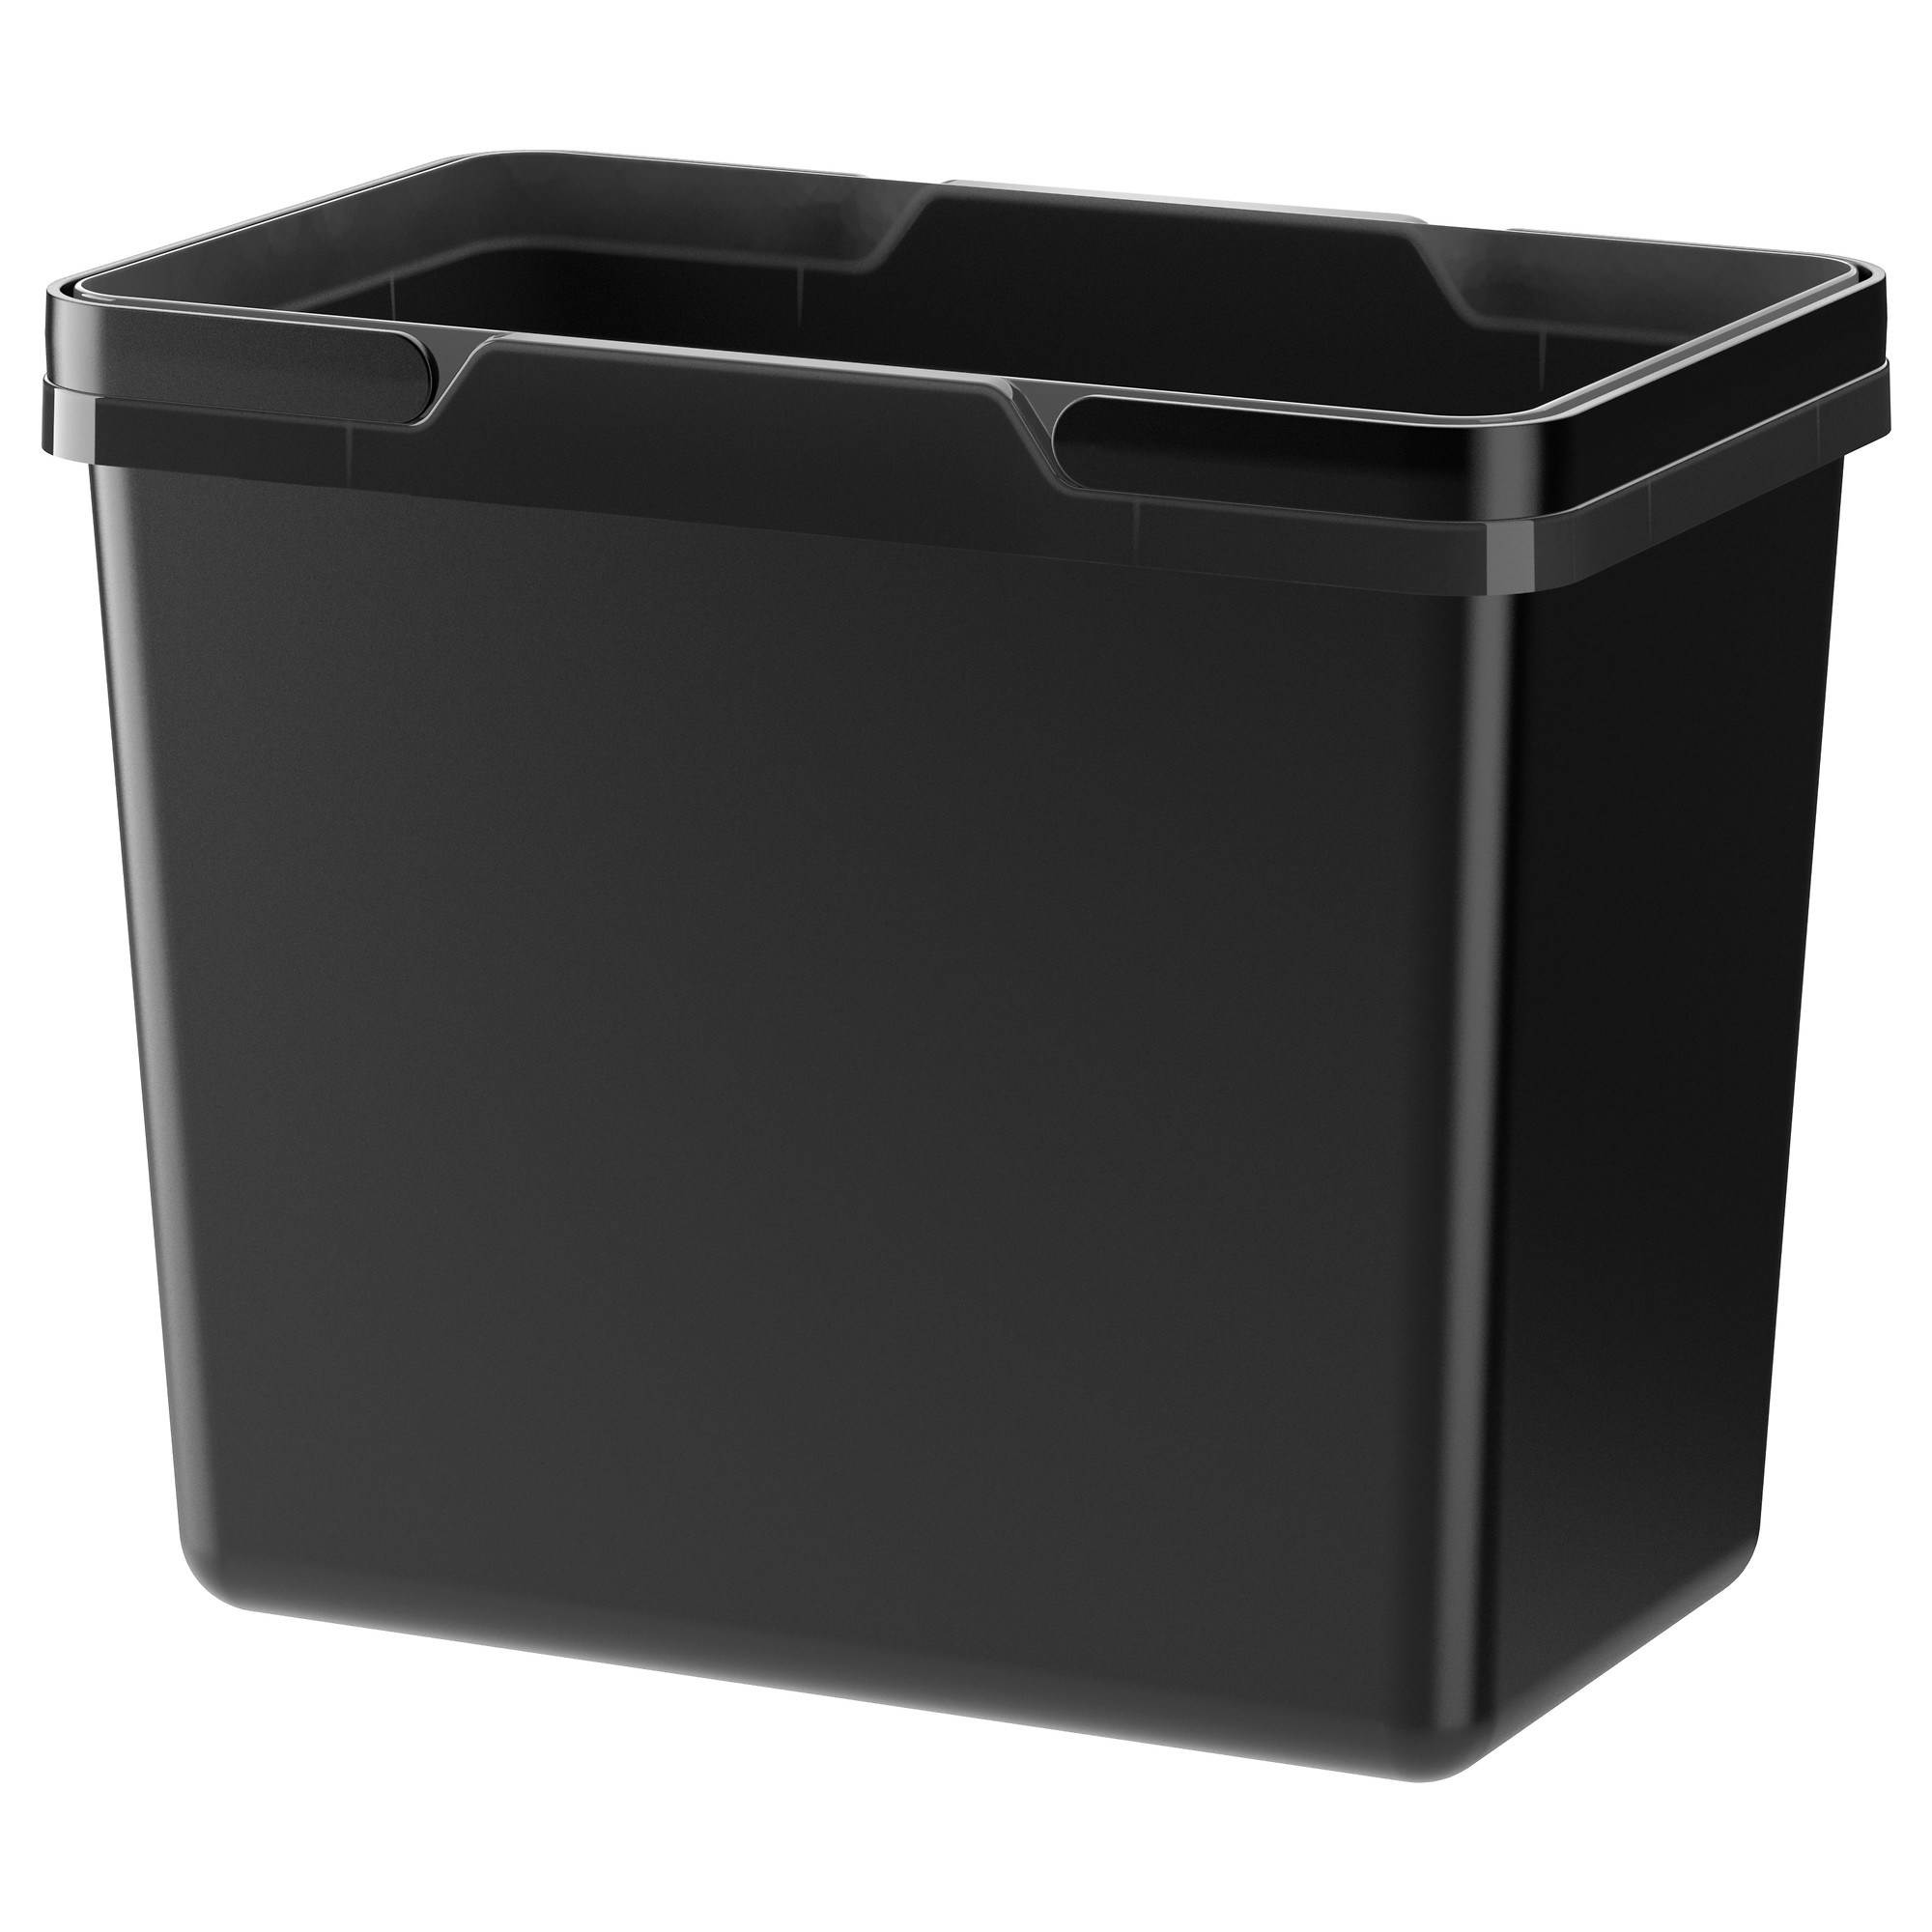 Decorative Kitchen Trash Cans Sorting Interior Organizers Ikea